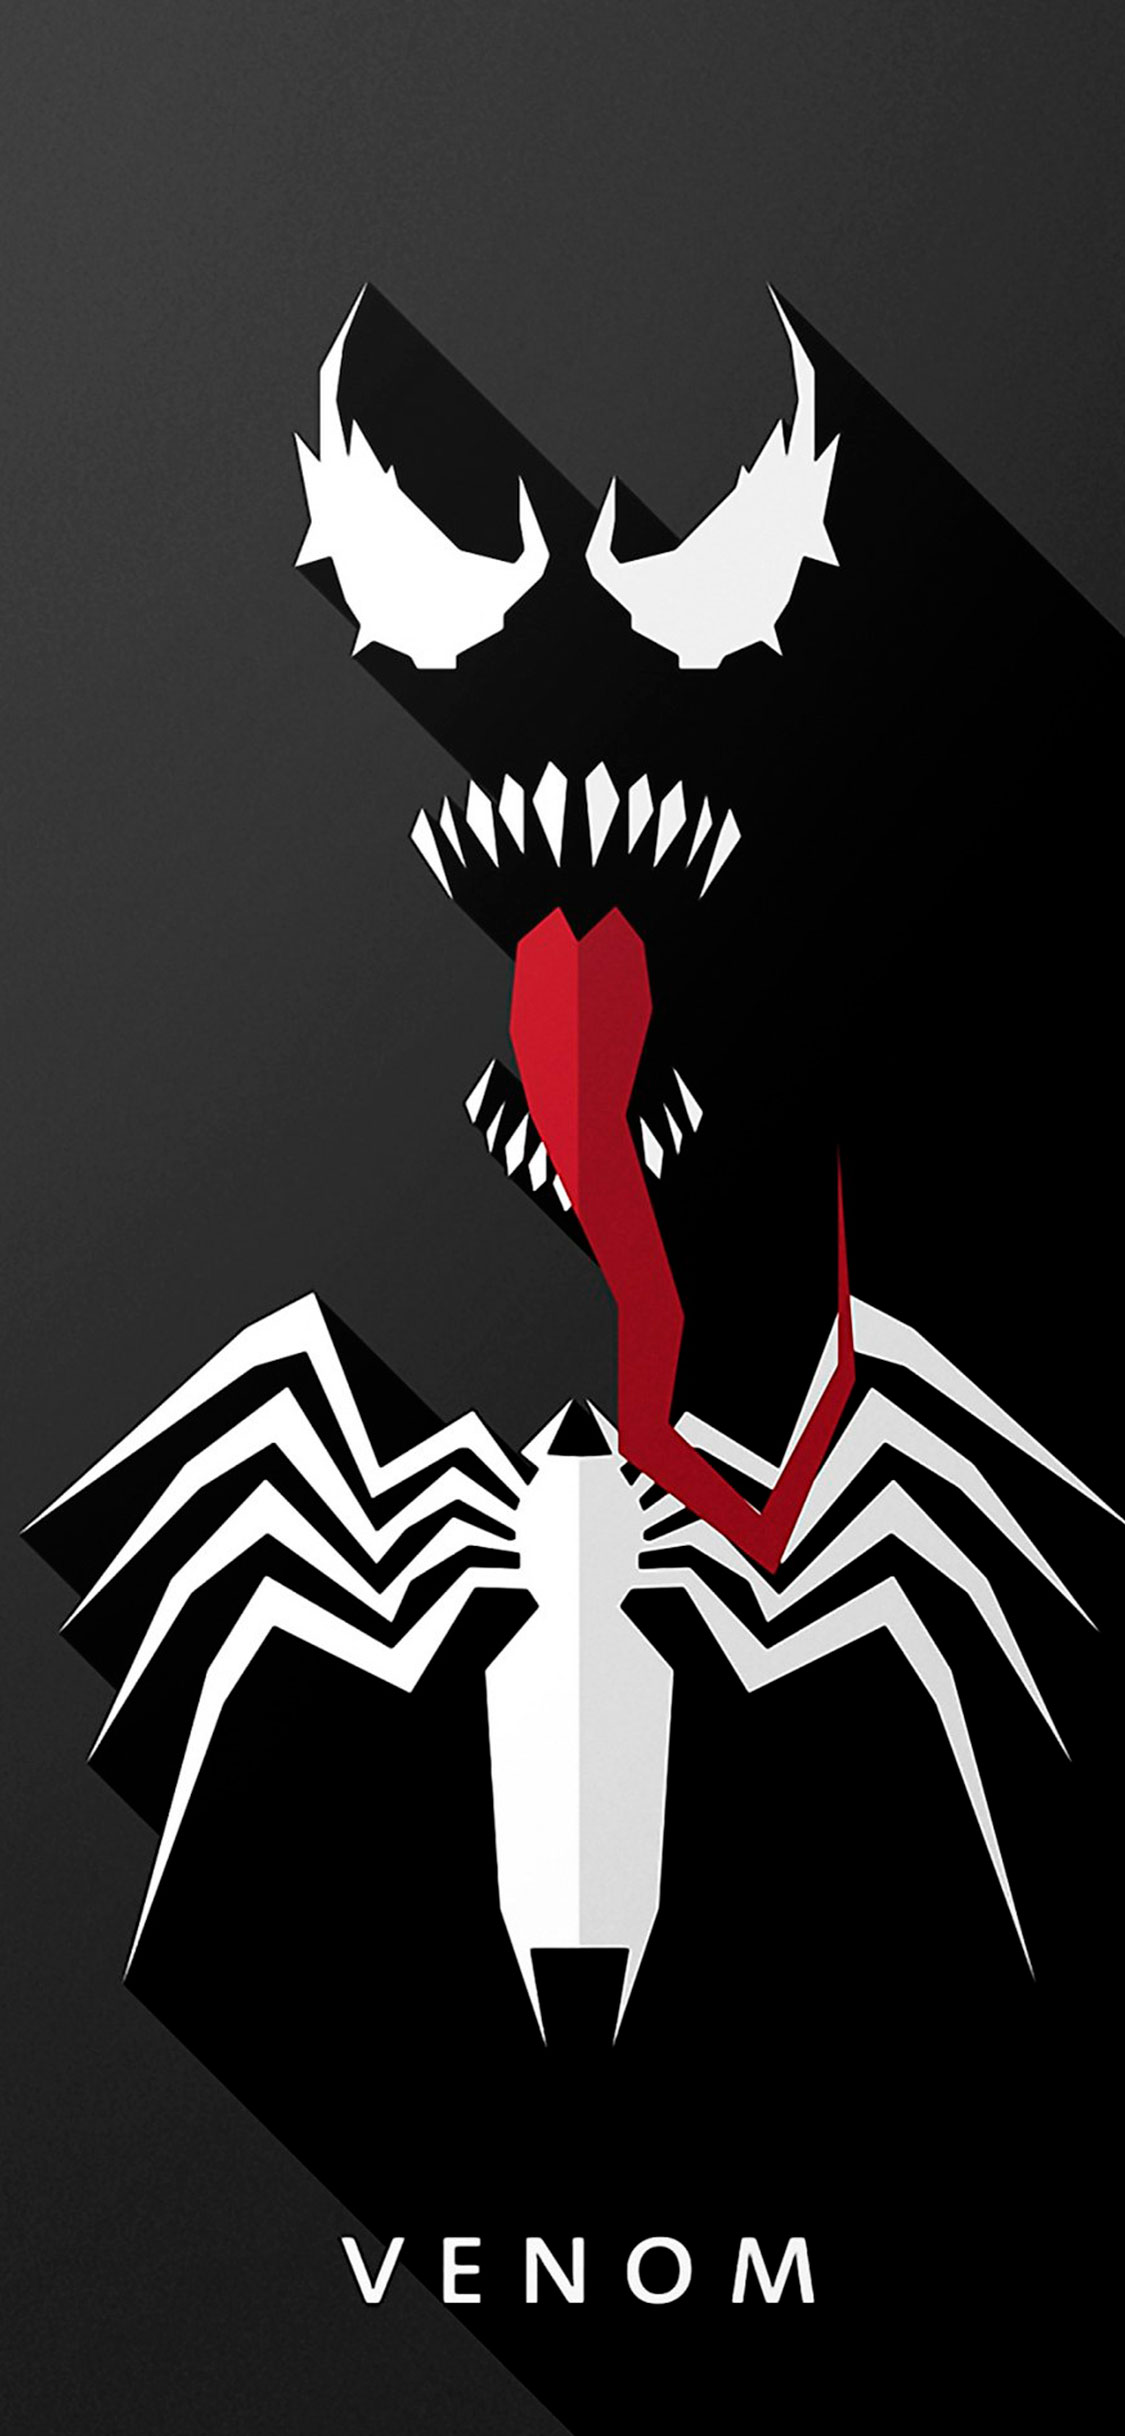 iPhone wallpaper venom3 Venom